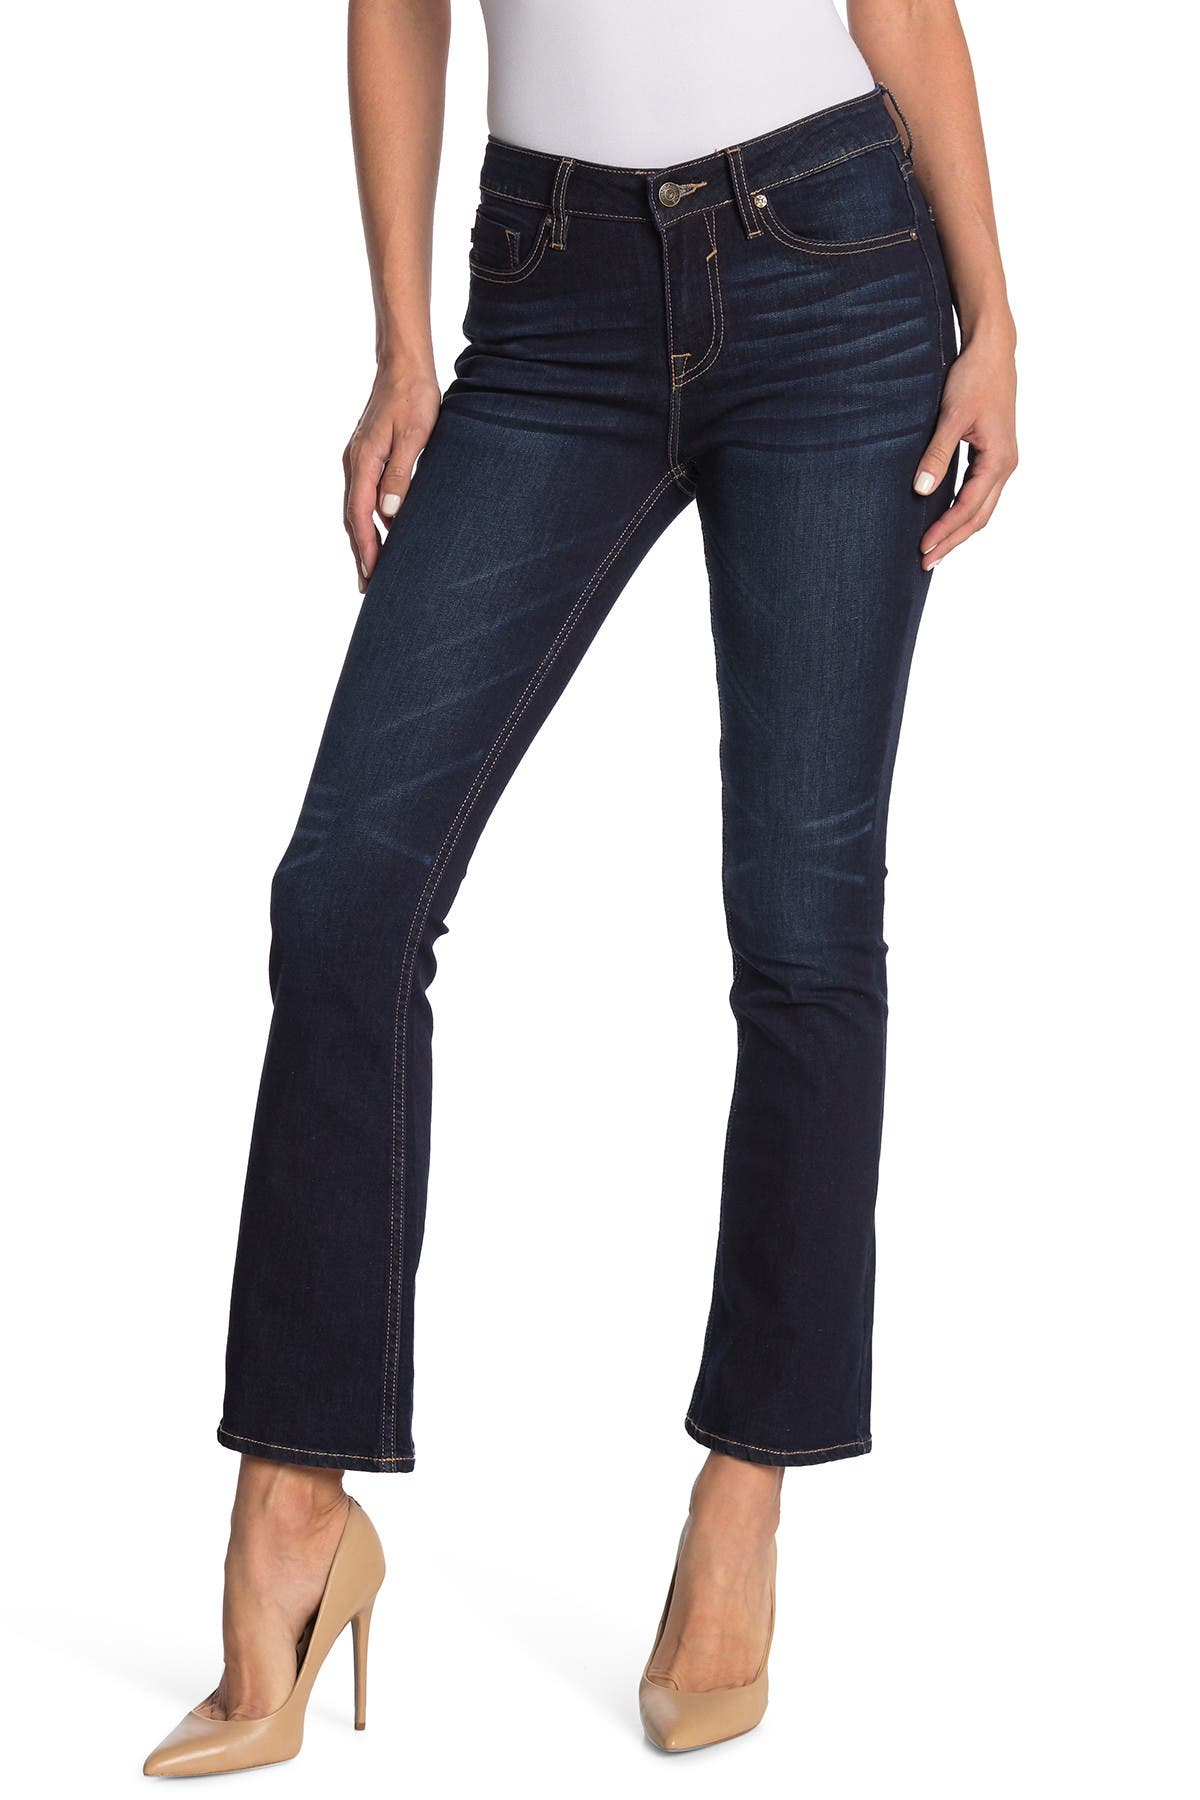 Image of Vigoss Marley Mid Rise Boot Cut Jeans